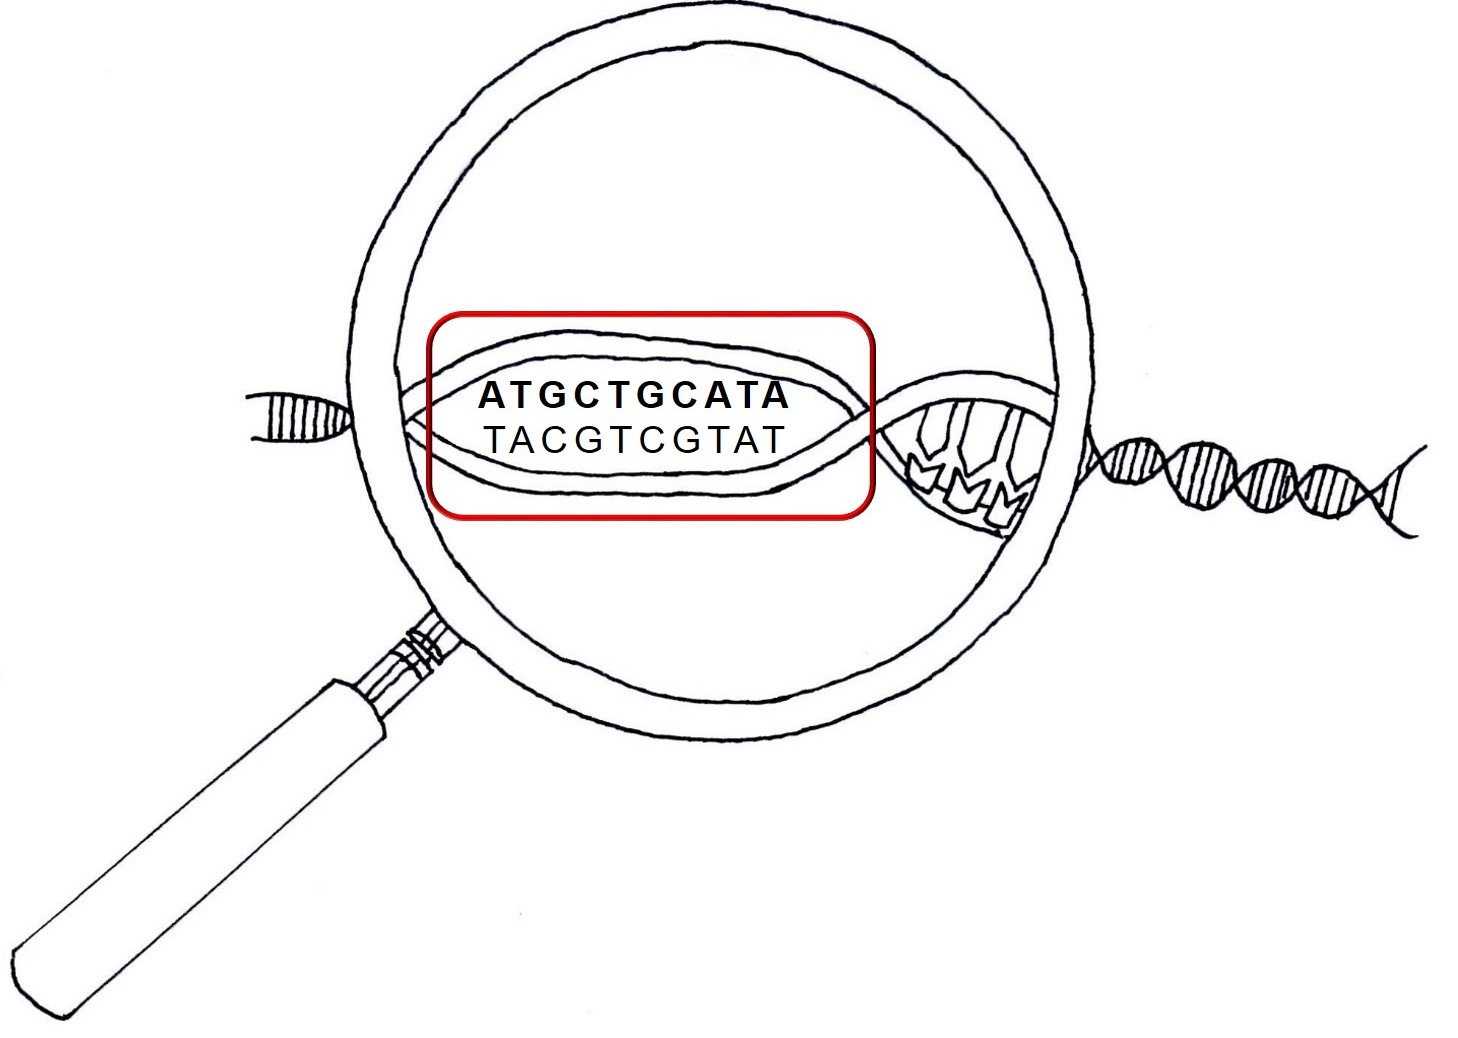 Magnifying glass figure